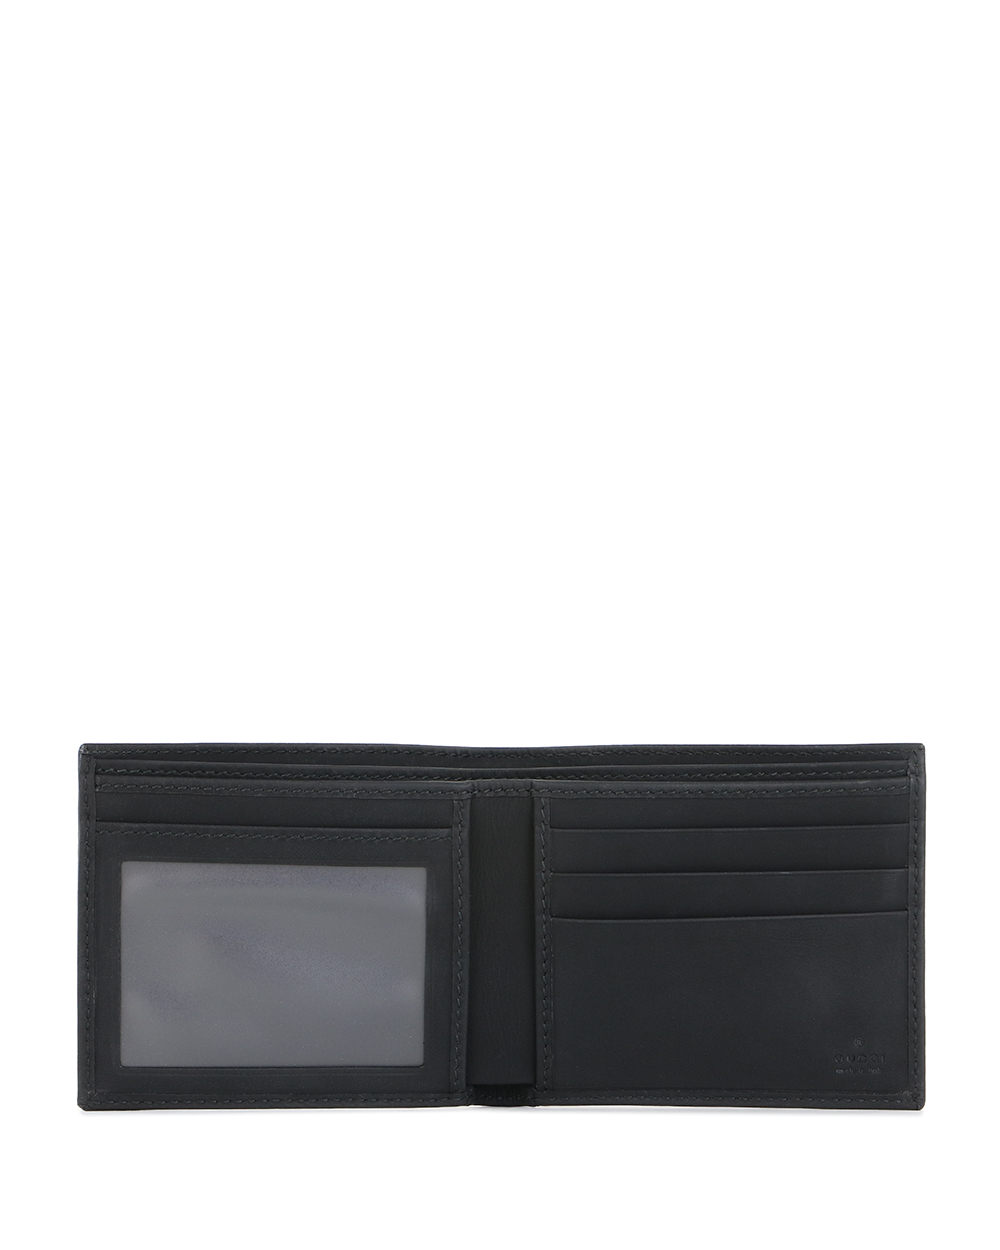 Double G 2-Fold Leather Wallet